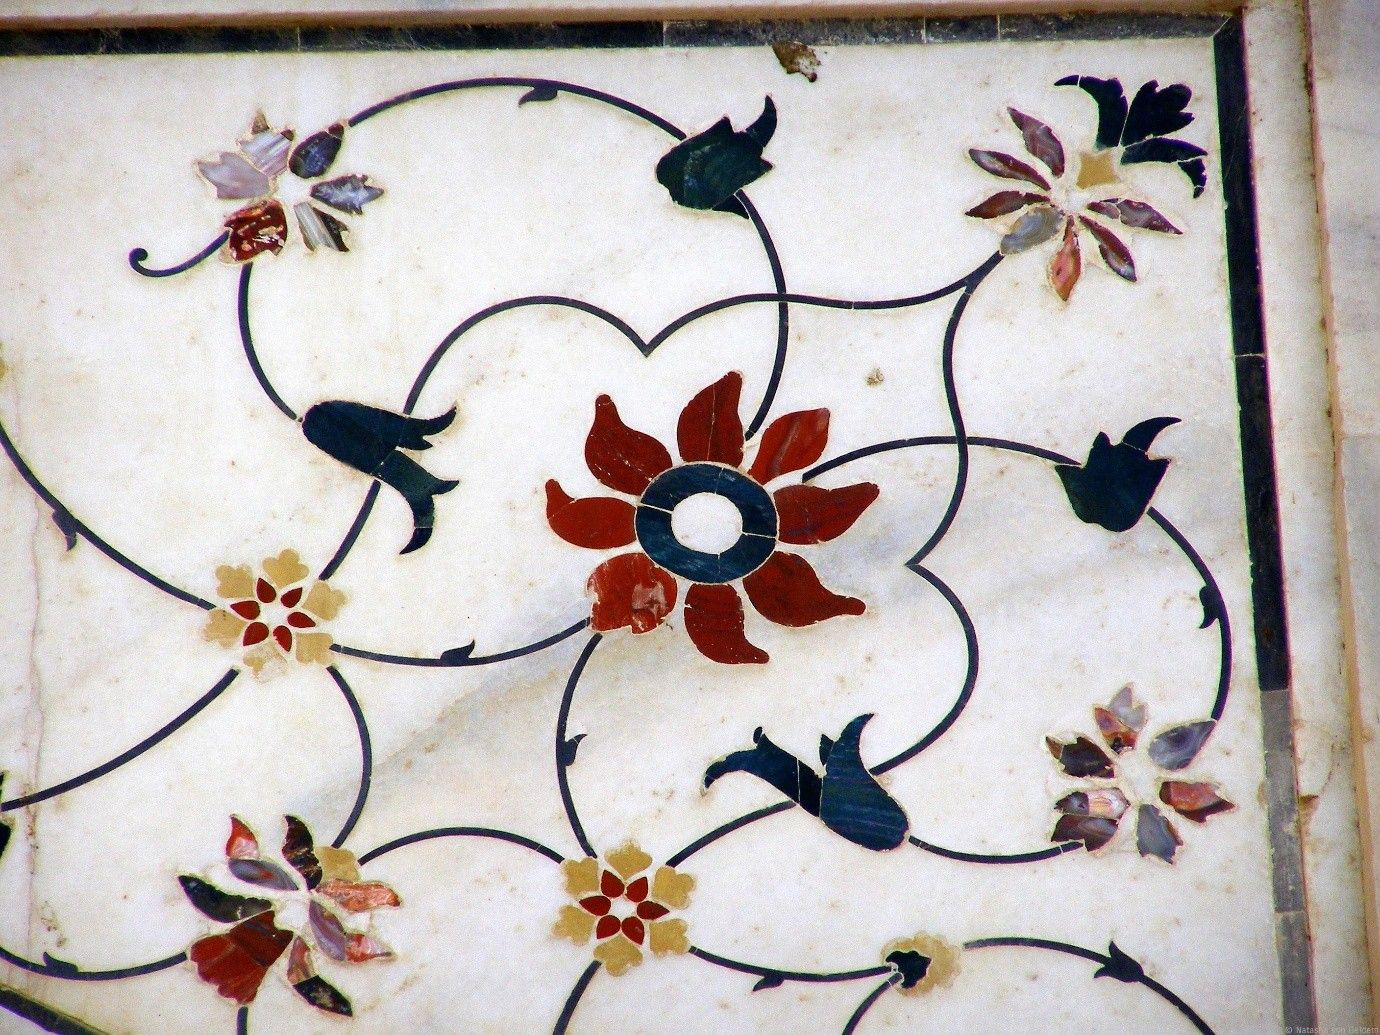 The Exquisite Mughal Architecture Coloured Marble Inlay